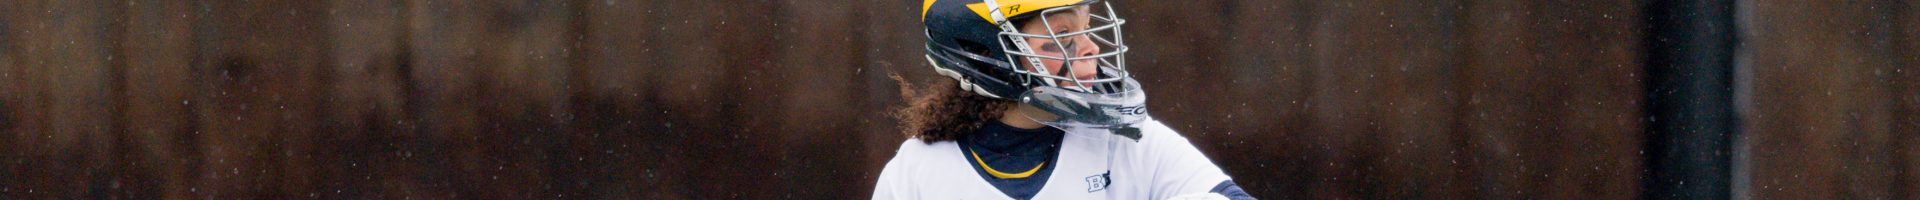 U-M Women's Lacrosse Goalie Mira Shane Features in Mental Health Film on Transition to College